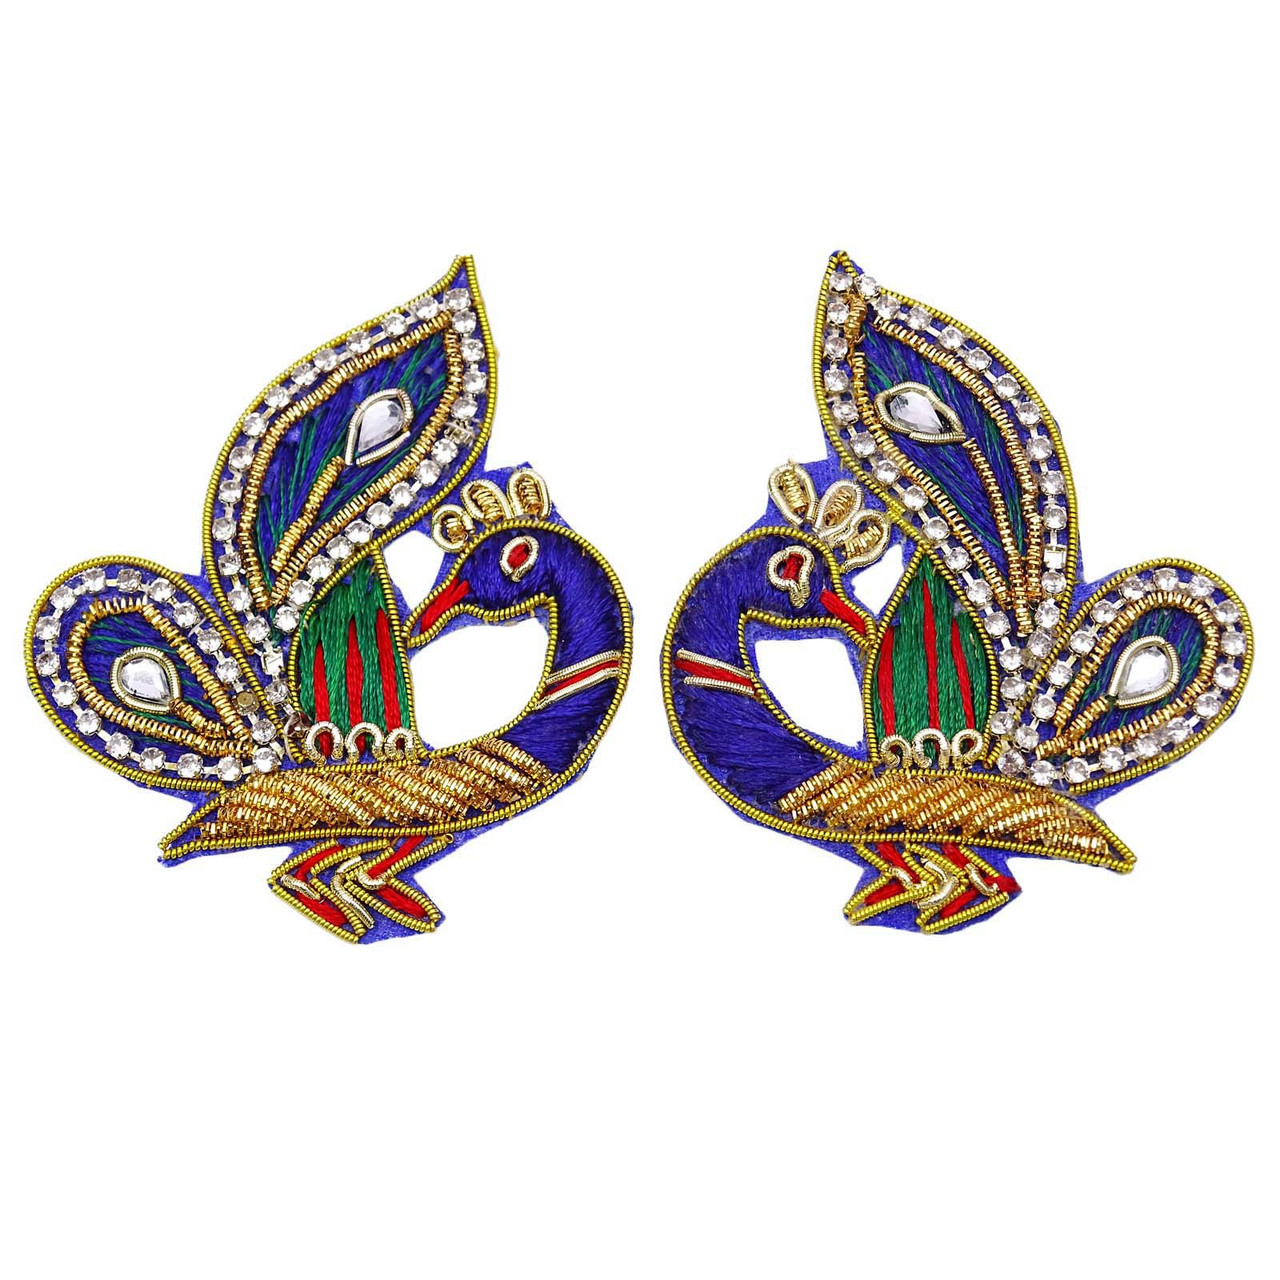 Indian Peacock Embroidered Appliques Multicolor Applique Crafting Sewing 1 Pair